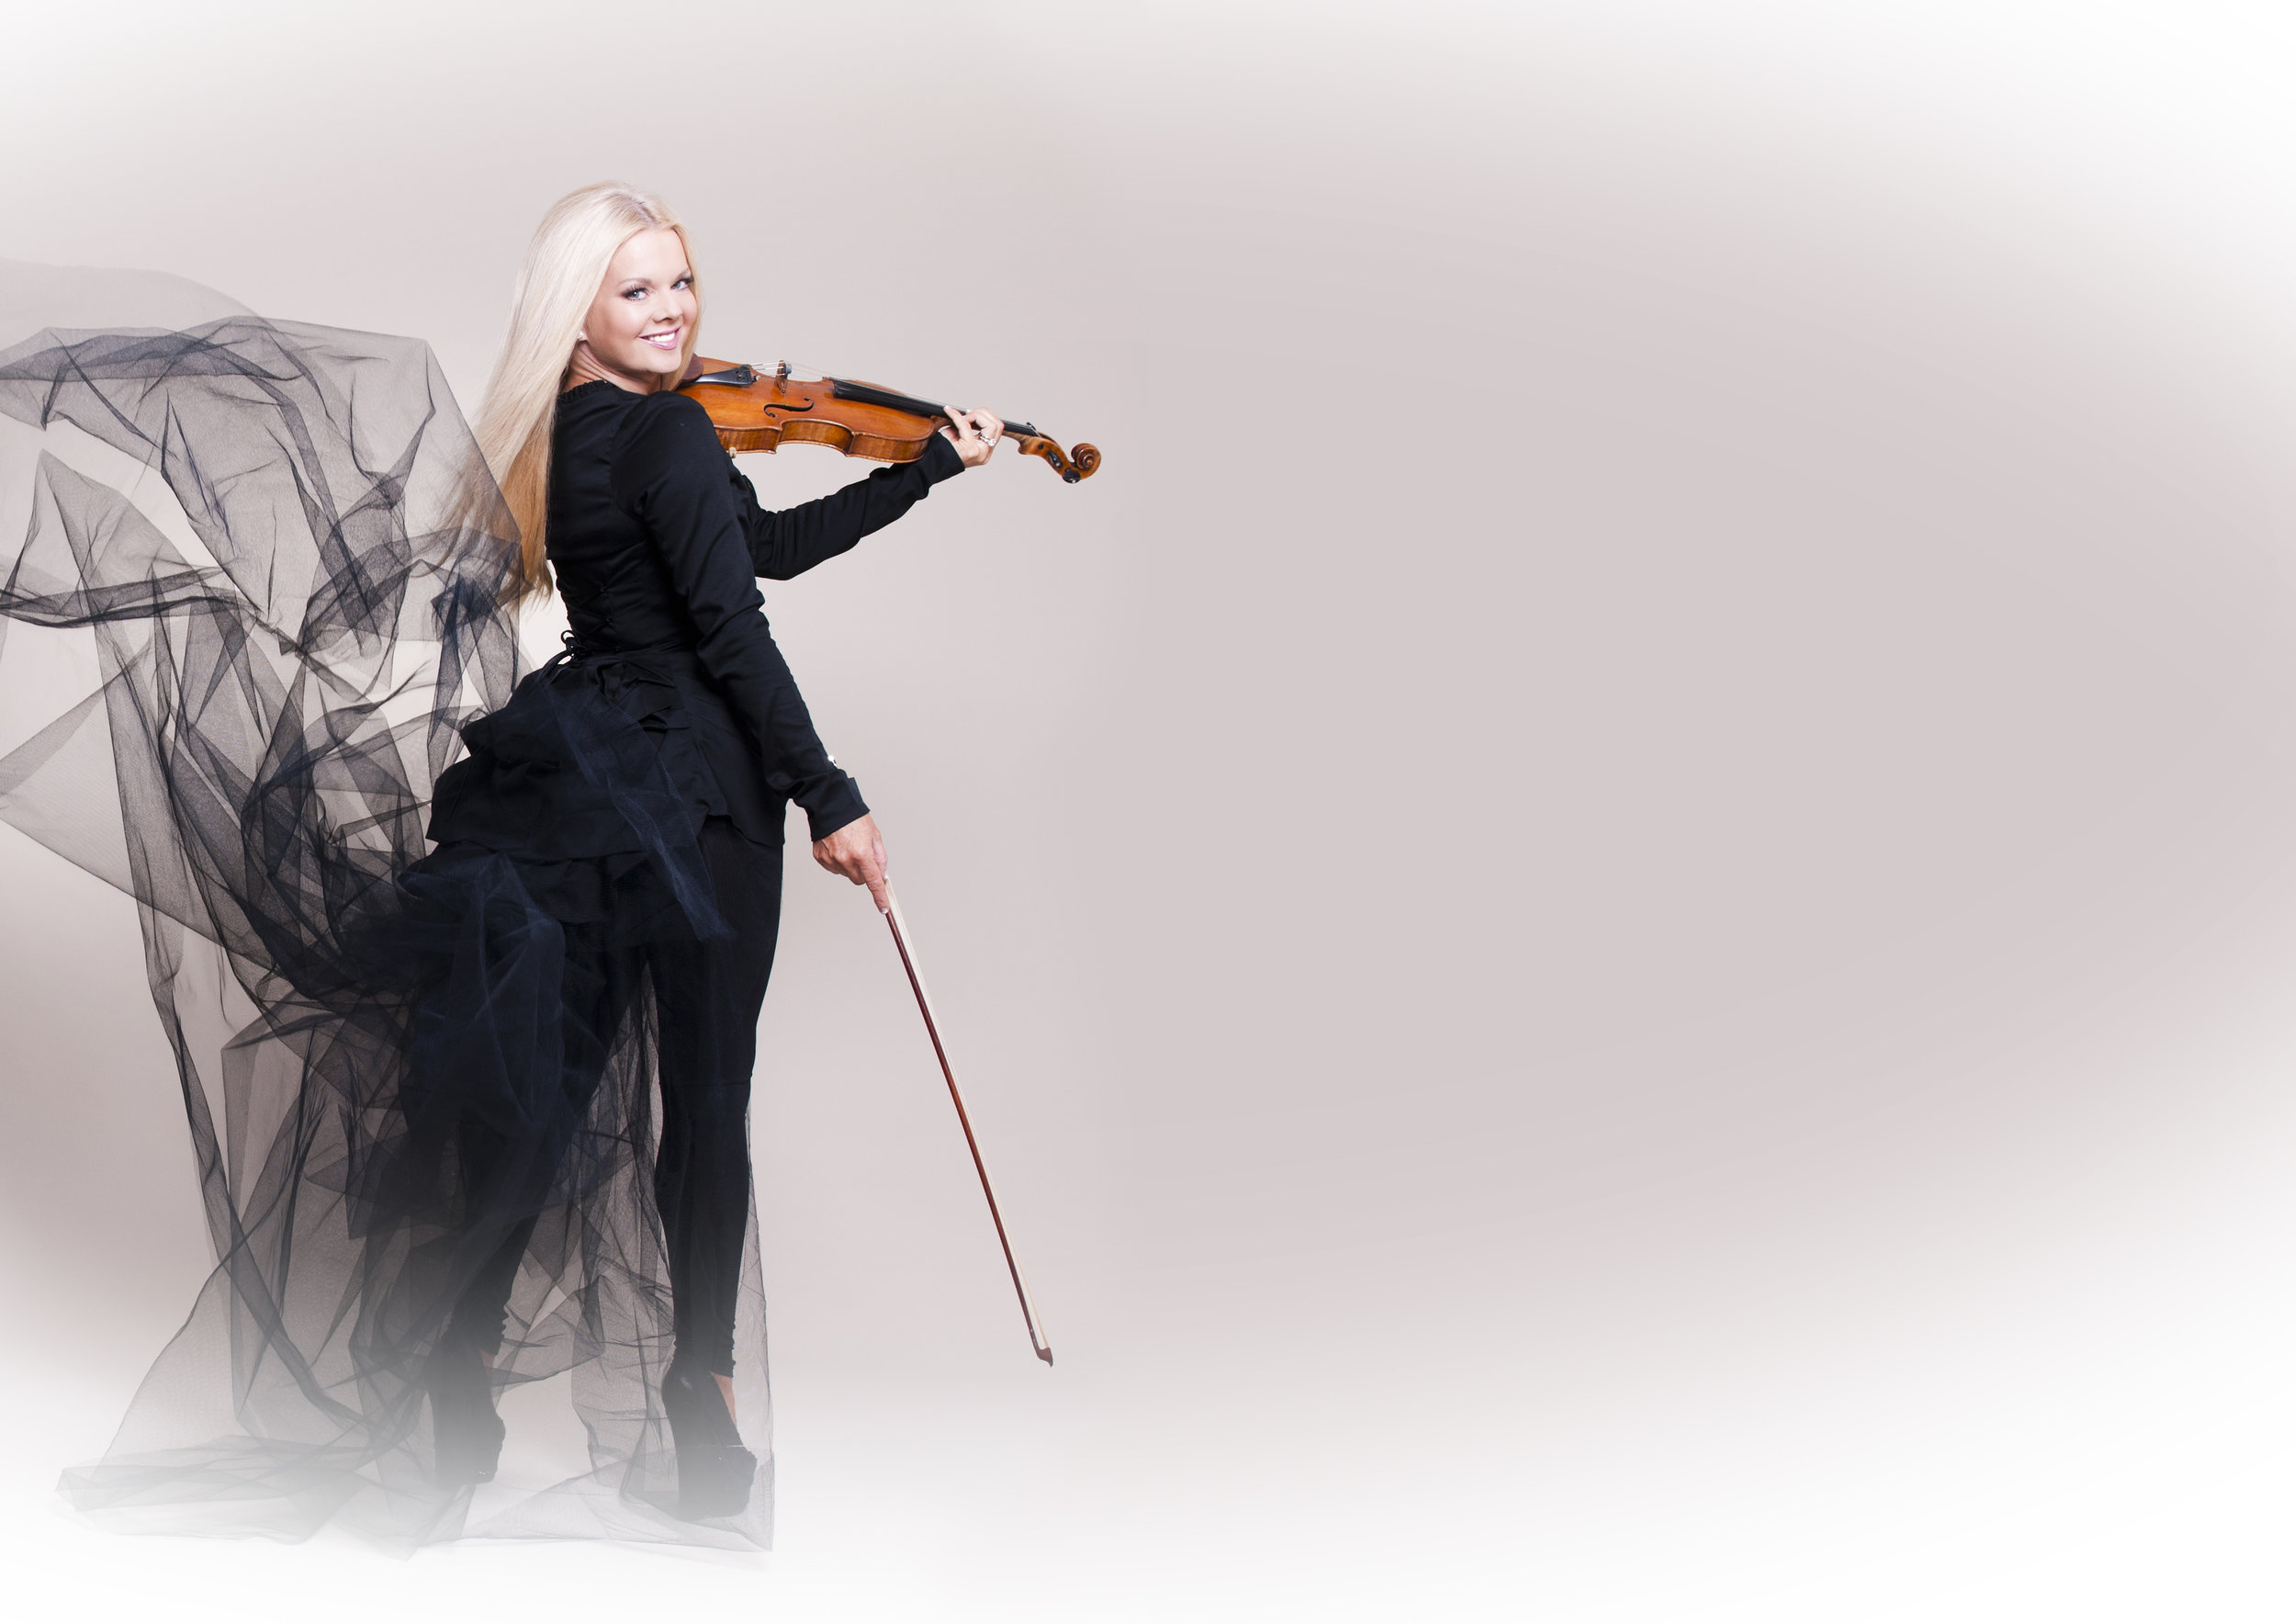 MAIREAD NESBITT - Website   |  Twitter  |  Facebook